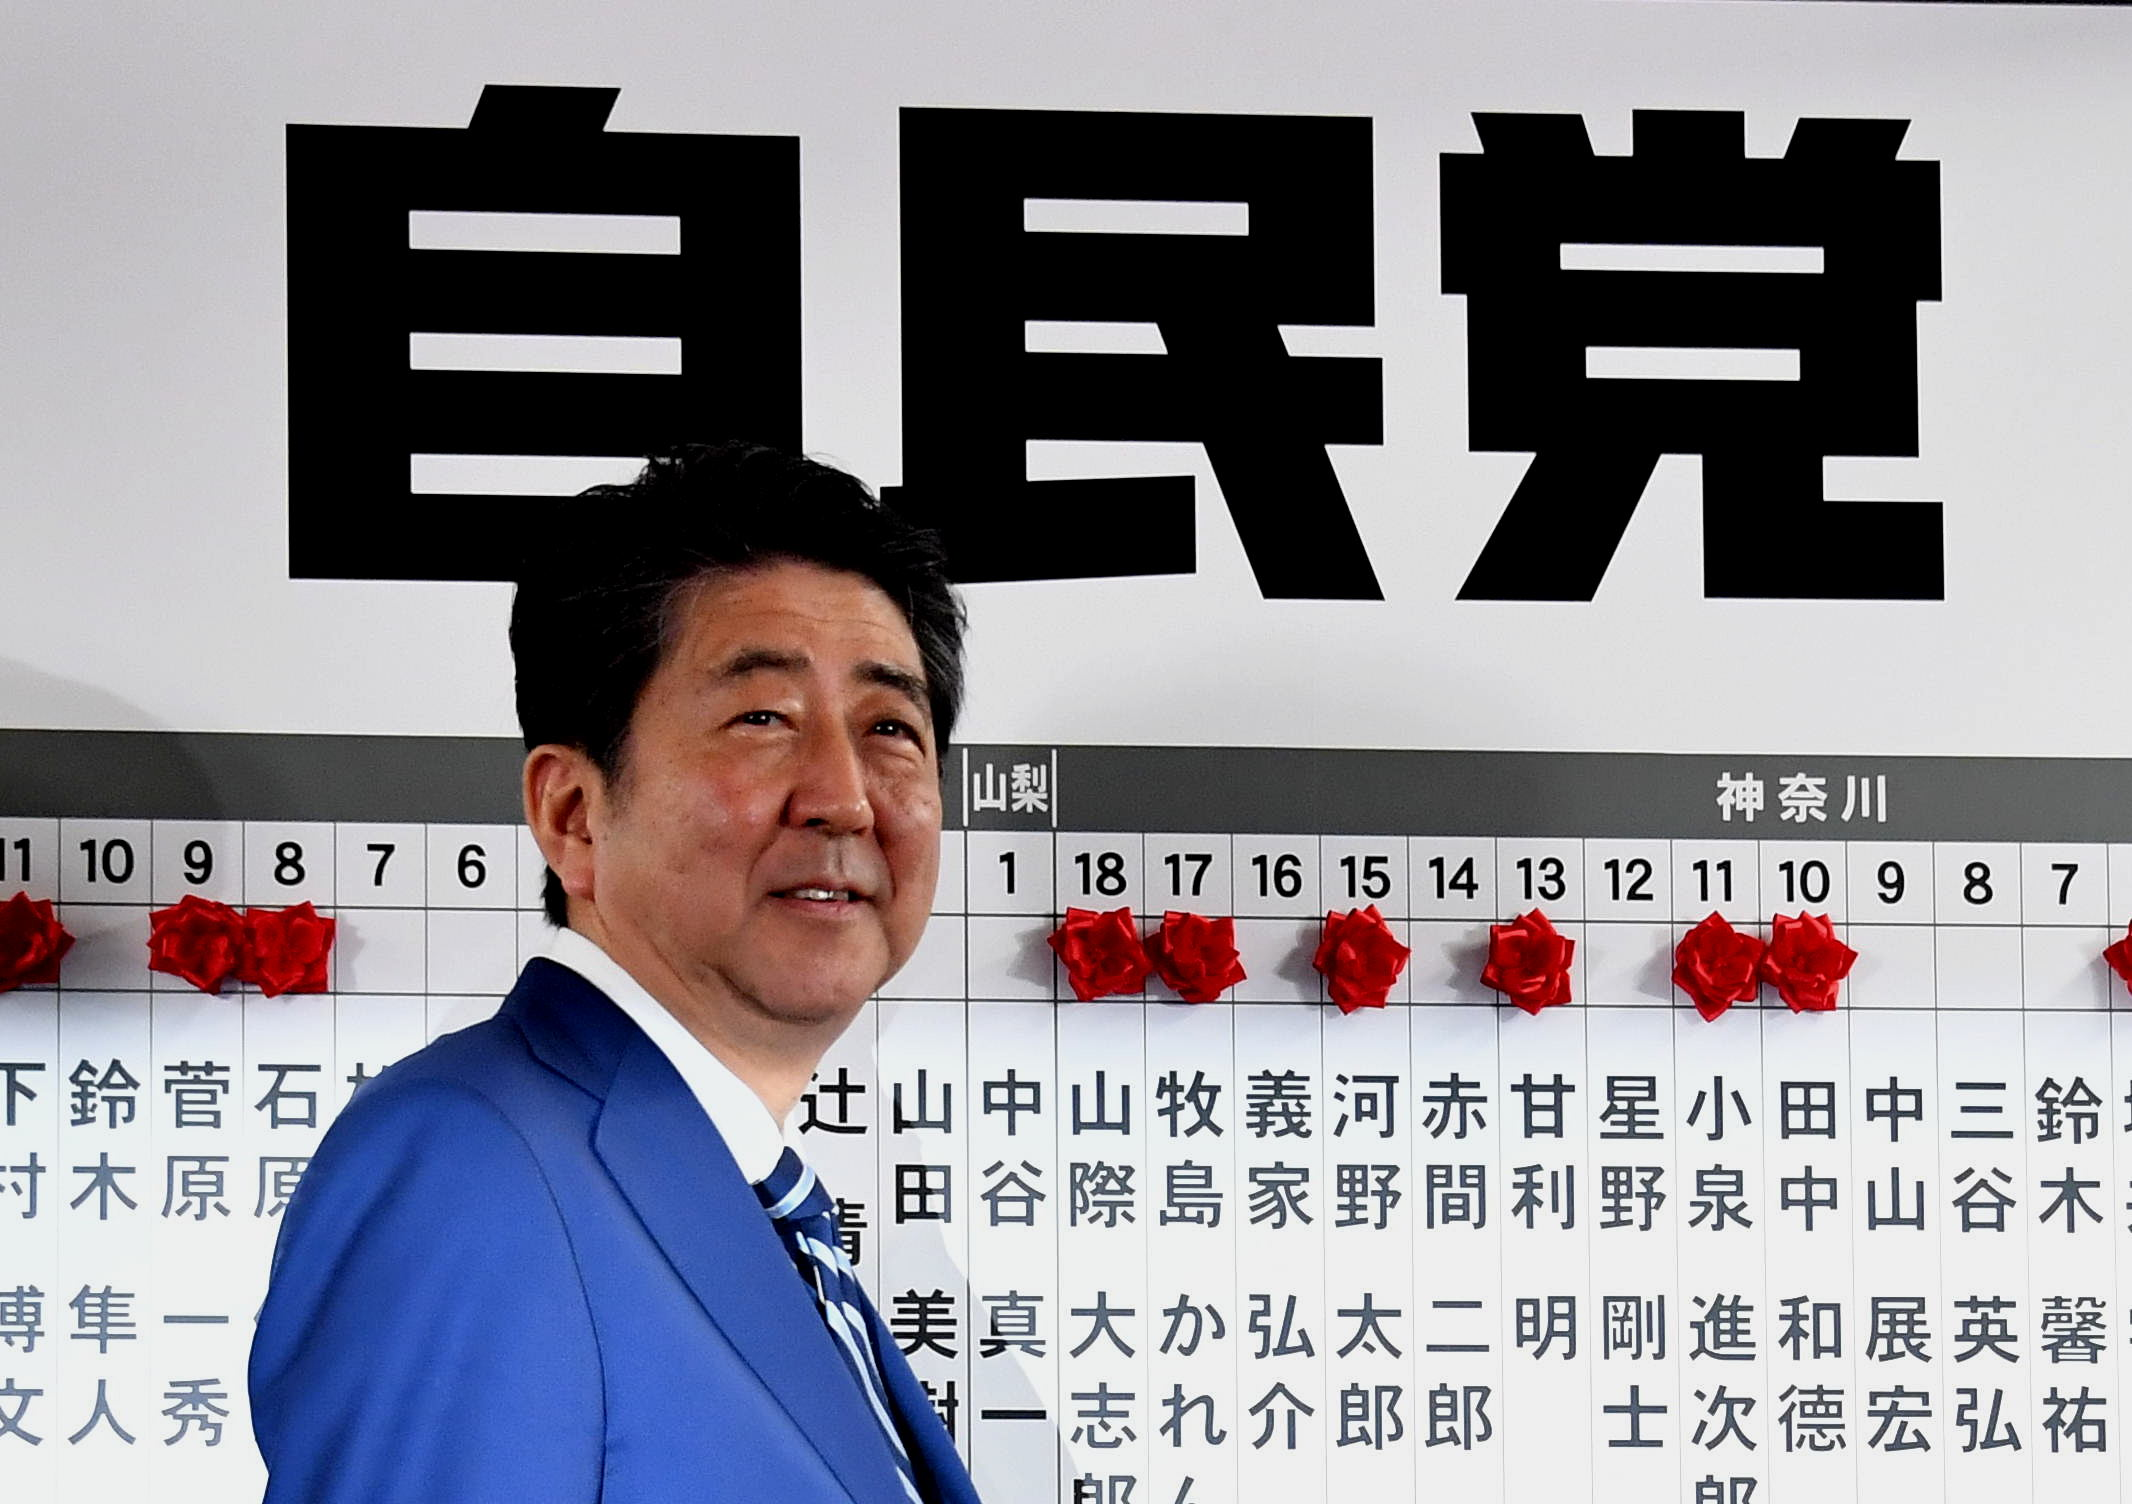 Prime Minister Shinzo Abe smiles before a board of candidates with paper roses who won their seats on Sunday at the Liberal Democratic Party headquarters in Tokyo. | YOSHIAKI MIURA